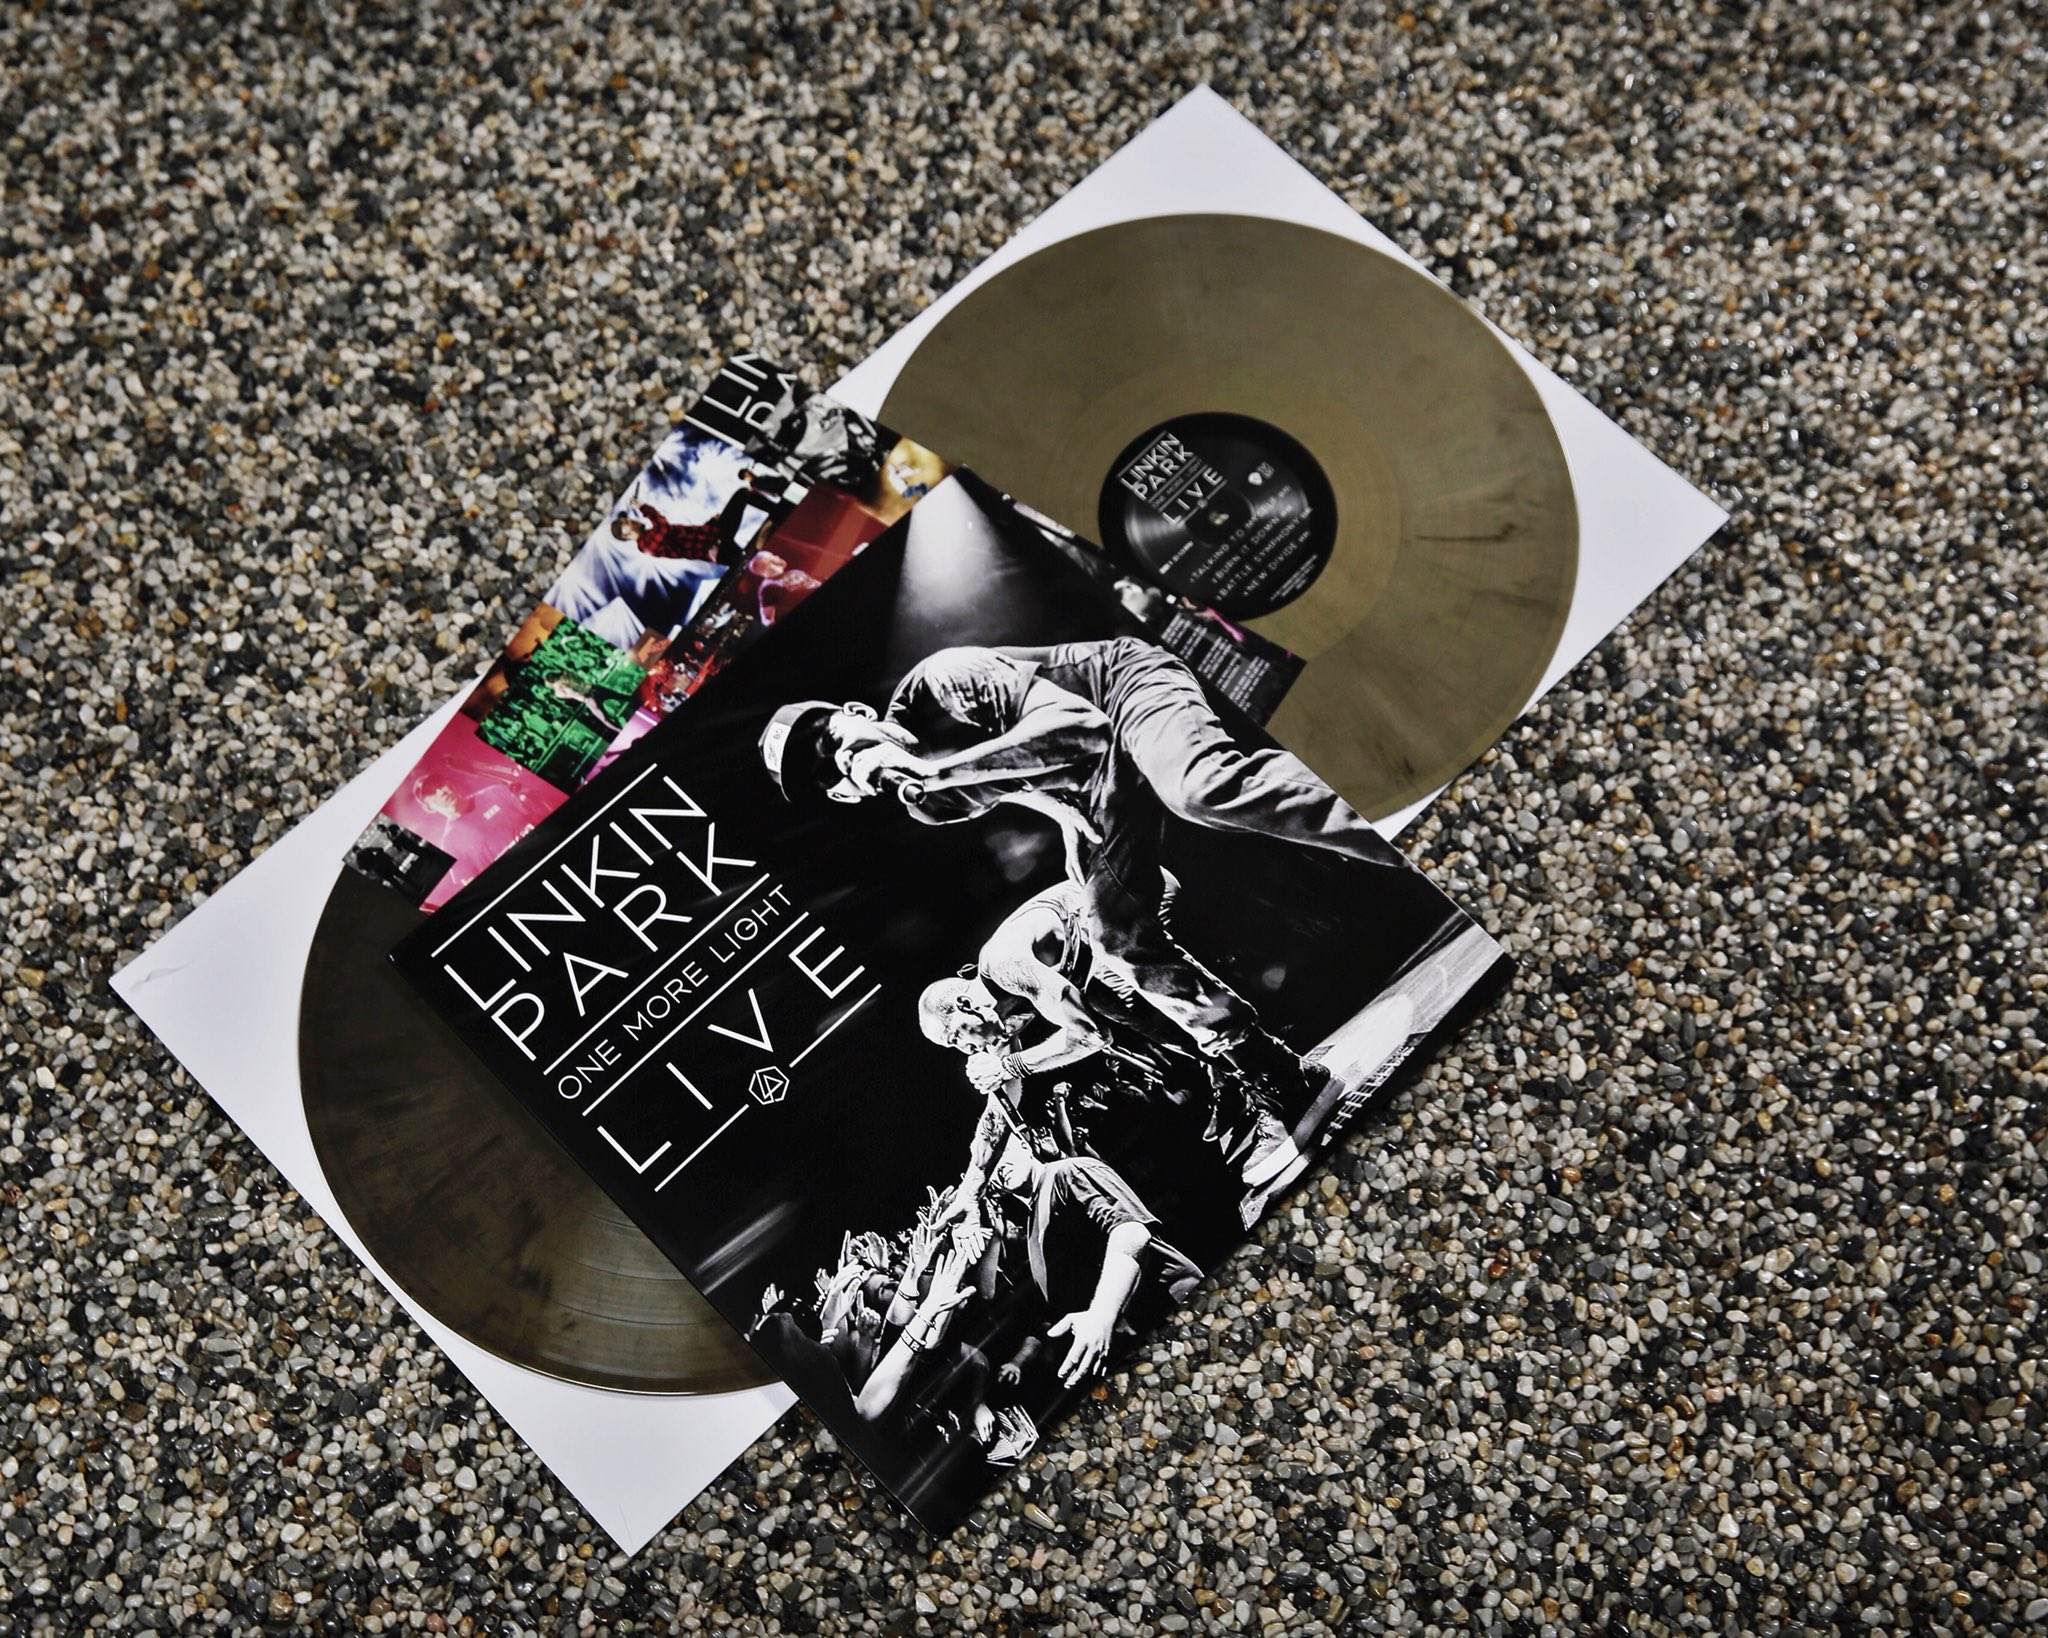 One More Light Live on gold/black vinyl available this Saturday @recordstoreday #recordstoreday #onemorelight https://t.co/hhMAbt7Va6